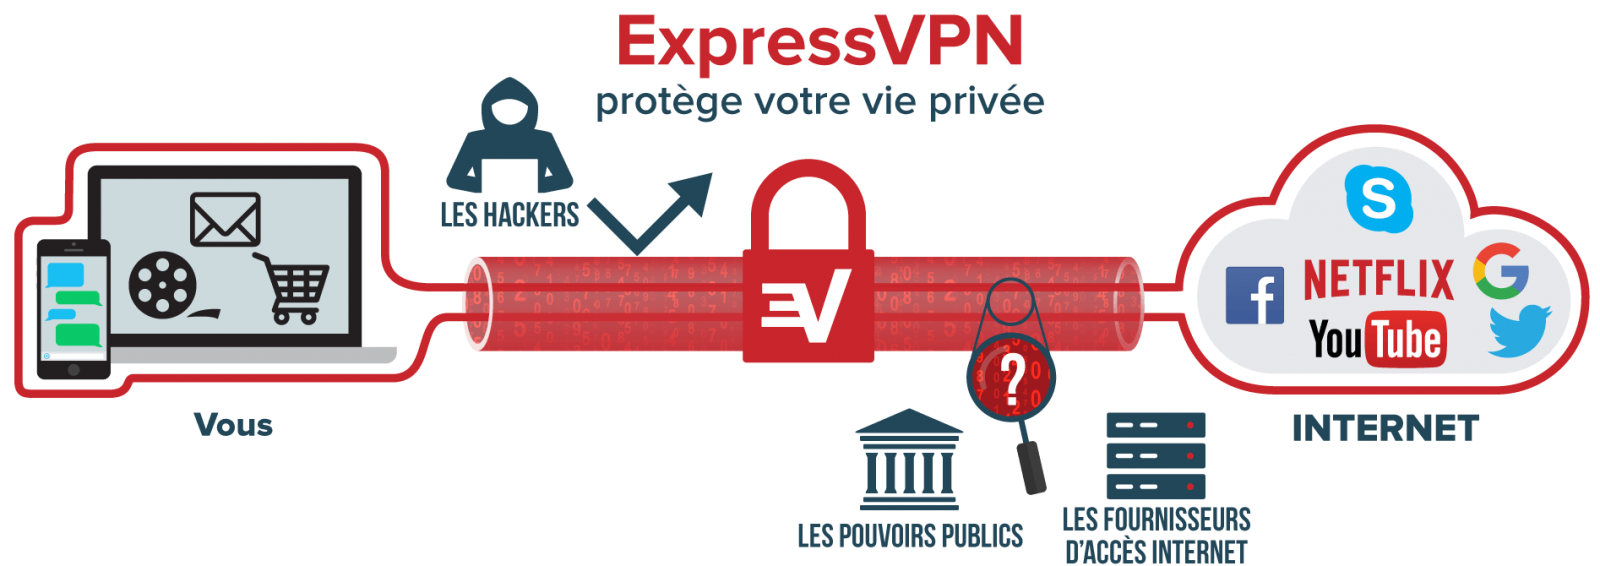 what-is-vpn@2x-b04137981d9ae8f7902cfc712f00d5b5.thumb.png.9b91c8a7e9ed07dd2609c27c08b59408.png